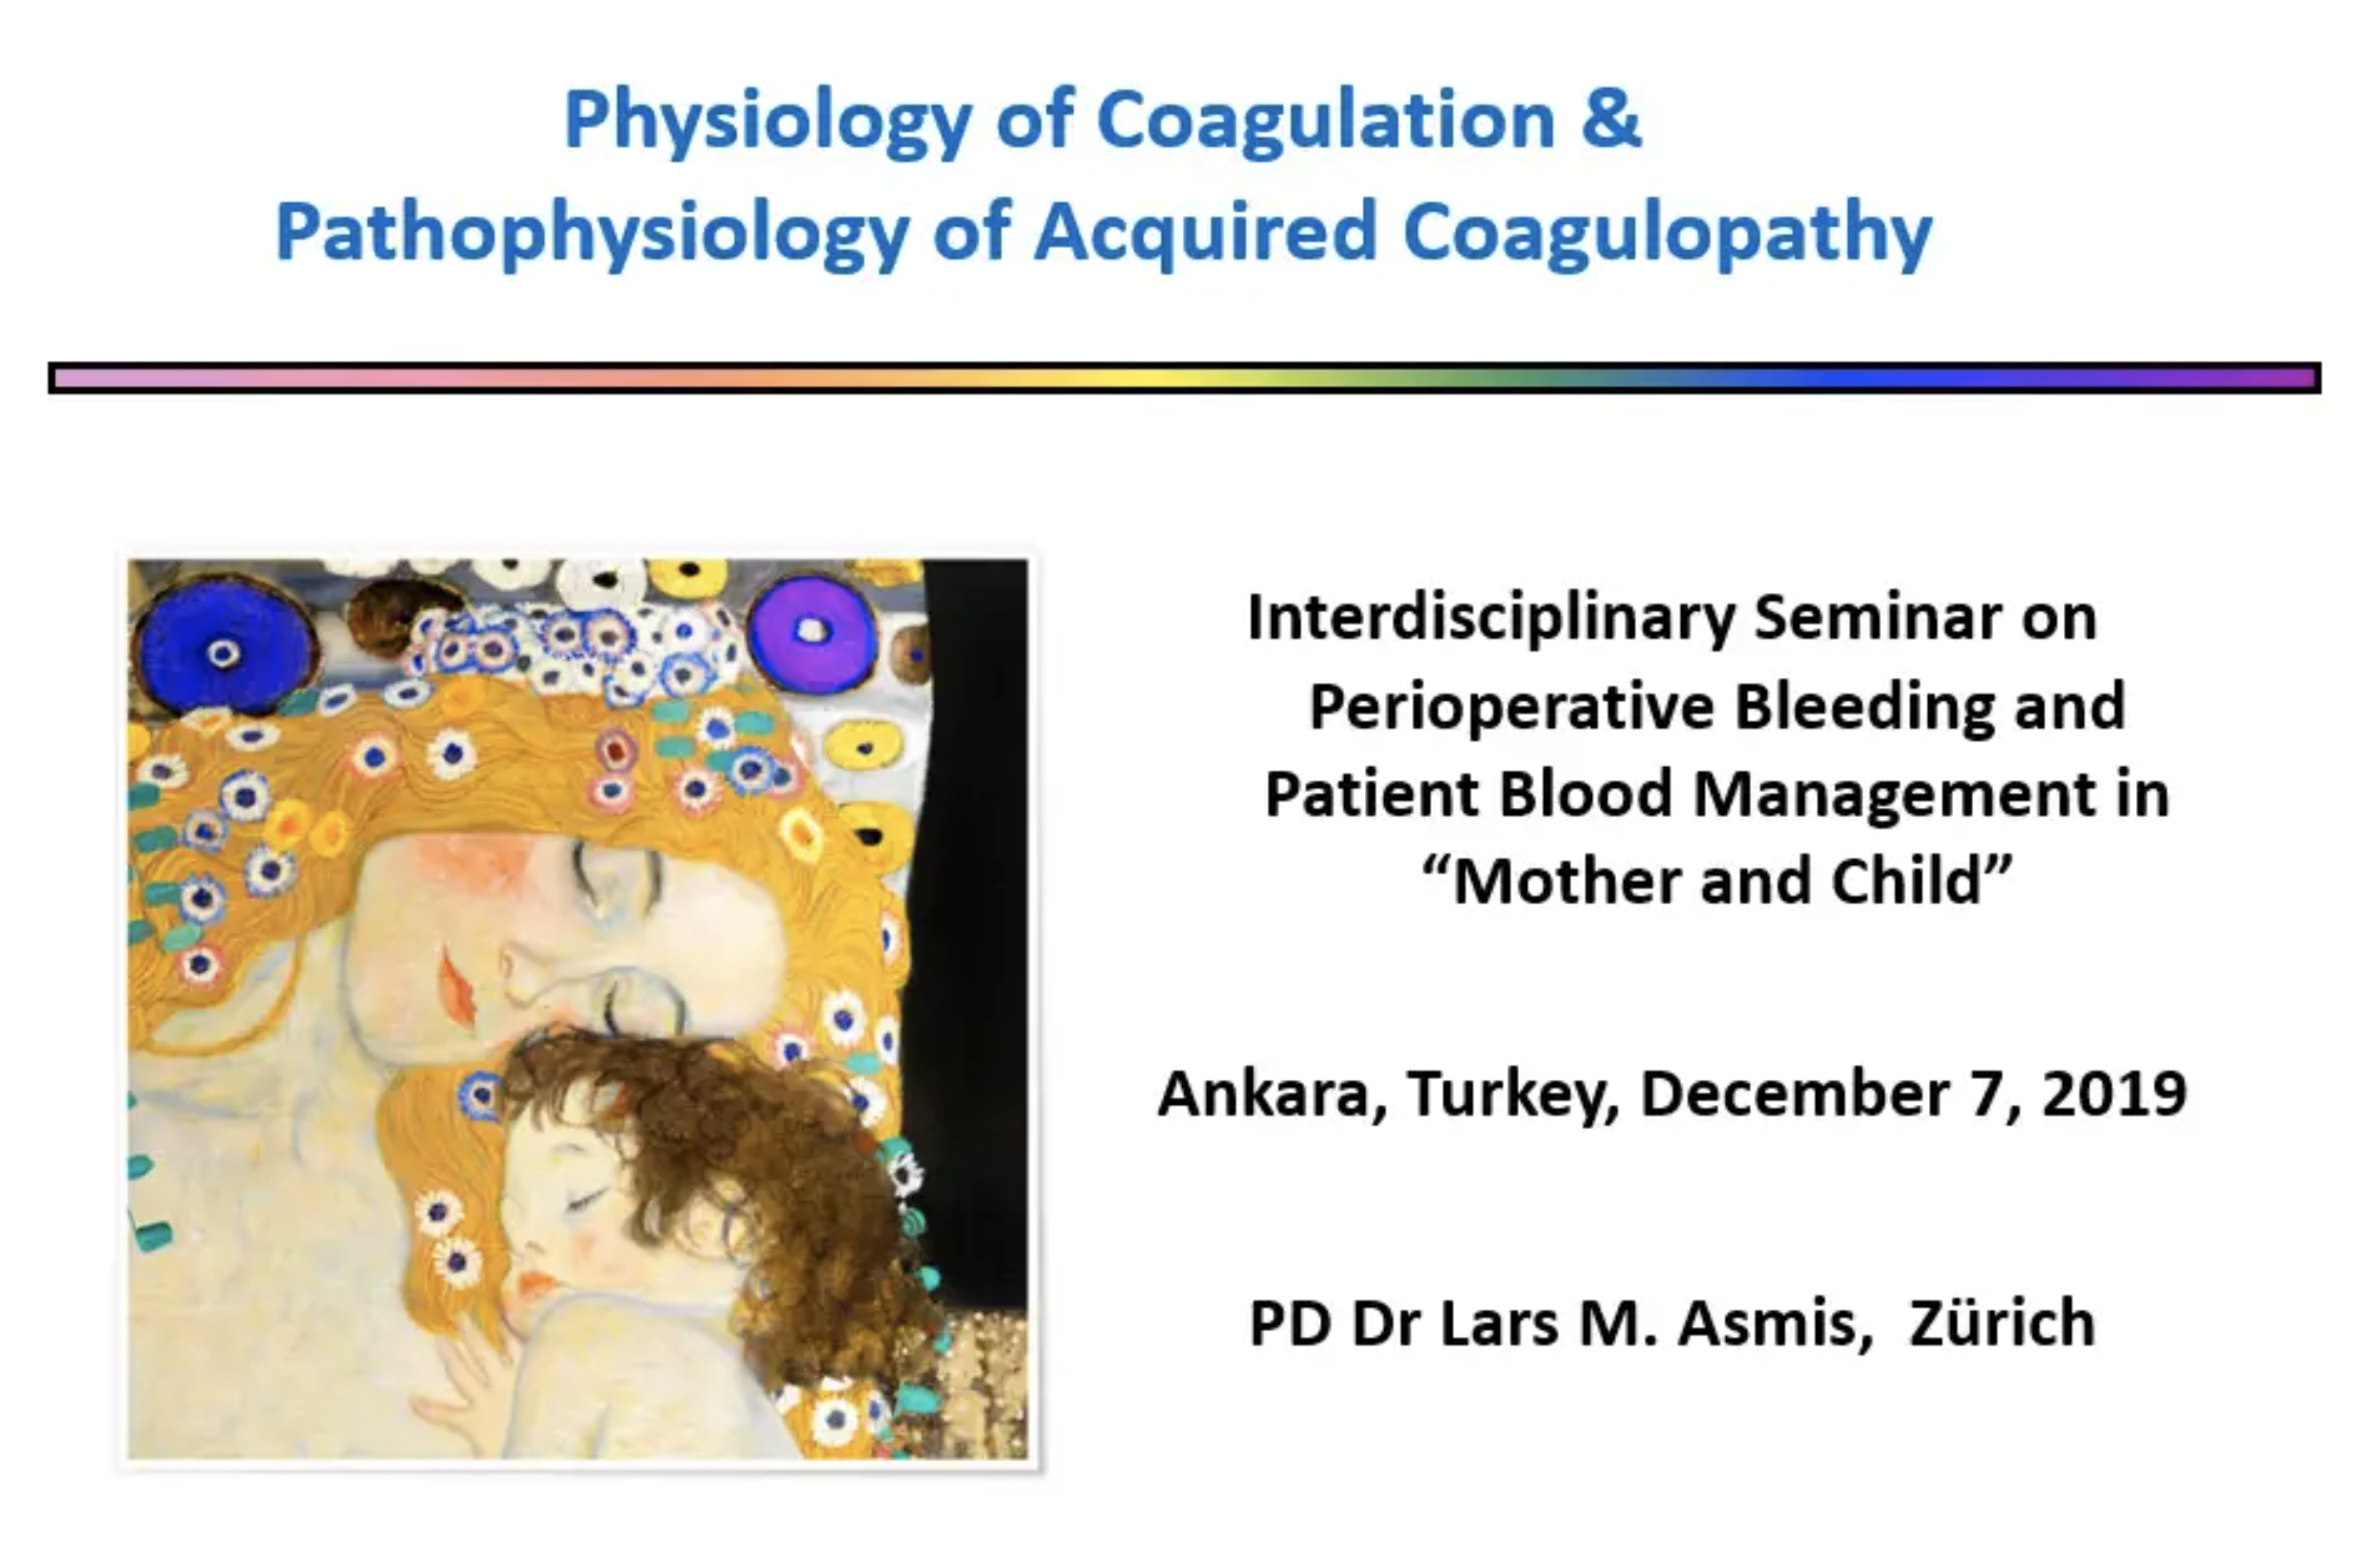 Physiology of Coagulation and Pathophysiology of Acquired Coagulopathy